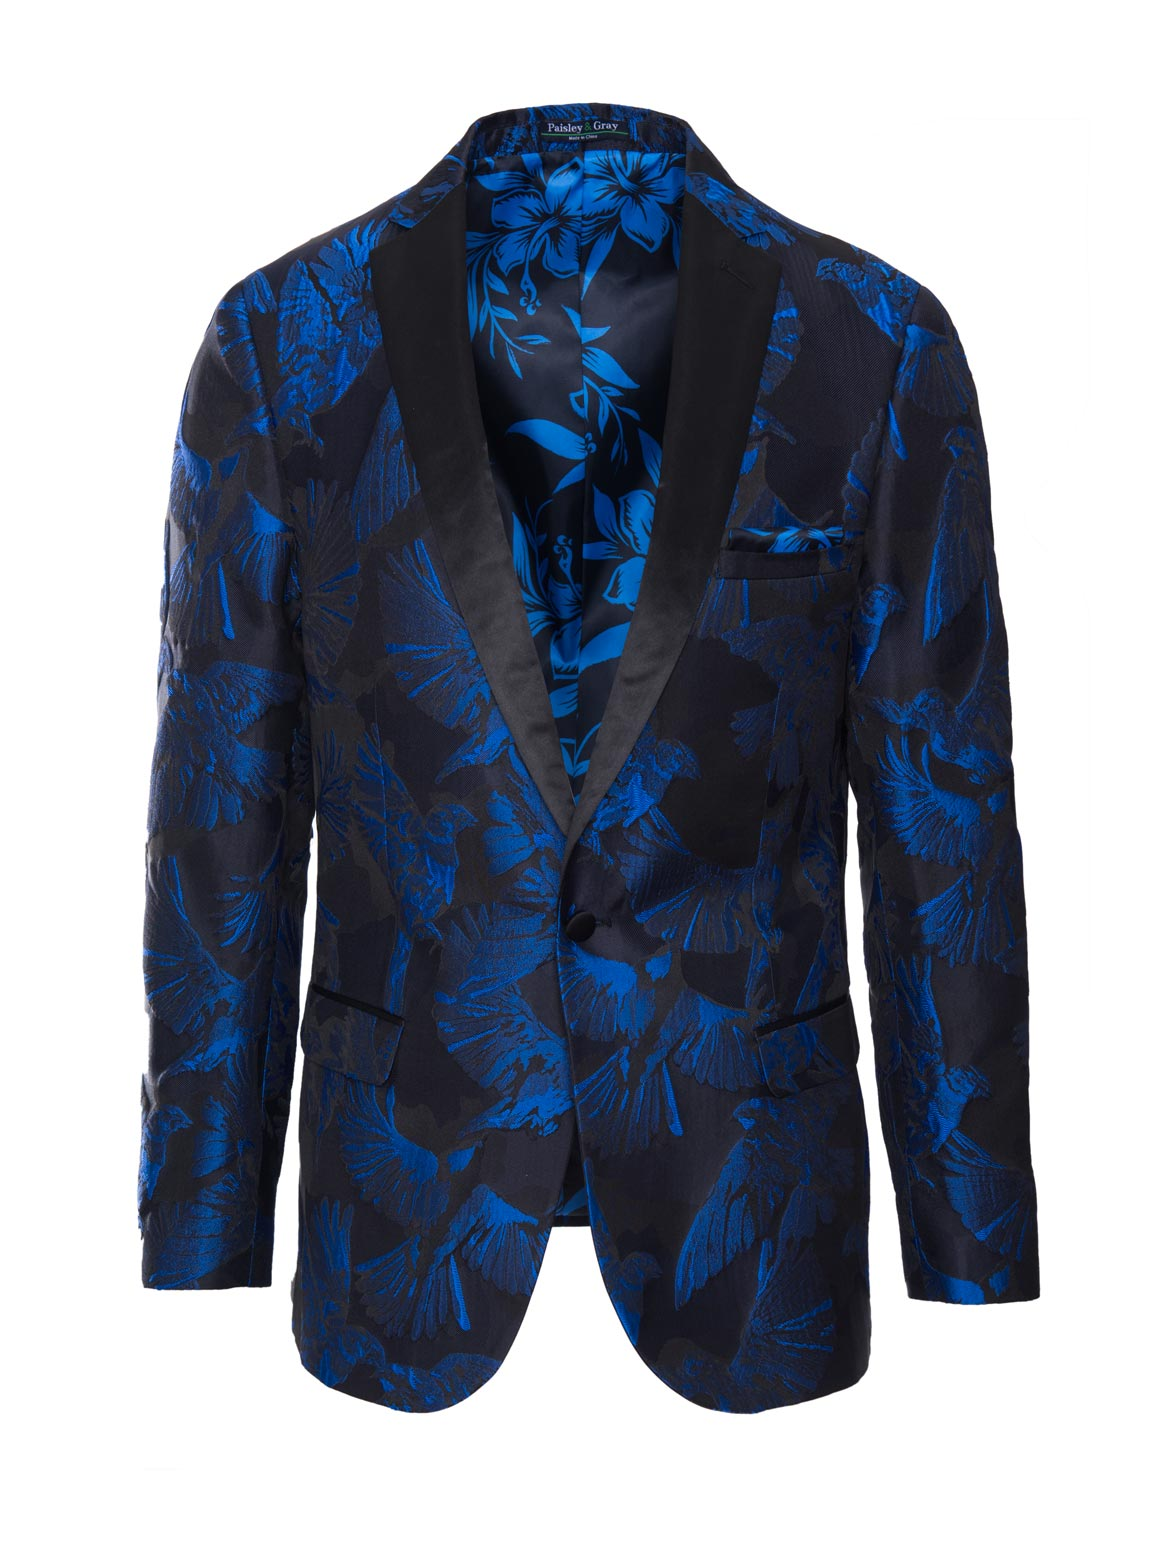 paisley & gray black & blue bird slim fit notch lapel tuxedo jacket 2109J harmonious electro-tropical lining and pocket square black satin lapel, trim & buttons flap pockets